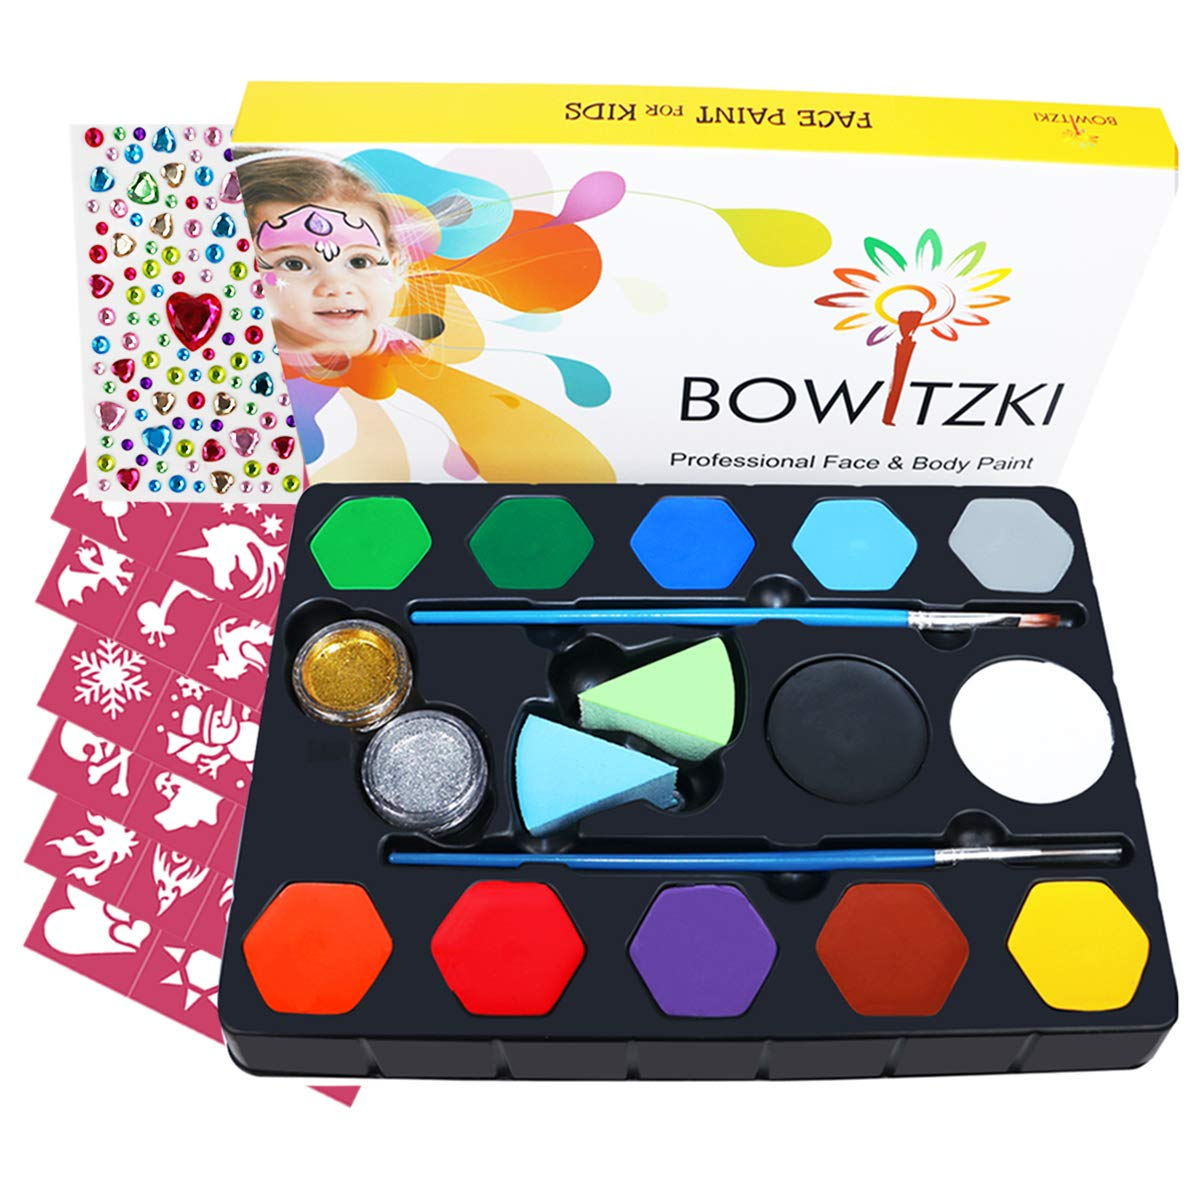 Bowitzki Face Paint kit for kids-30 Vivid Colors,2 Brushes,2 Chunky Glitter,2 sponges,32 Reusable Stencils,Professional Non-Toxic Halloween Party Makeup Body /& face Painting